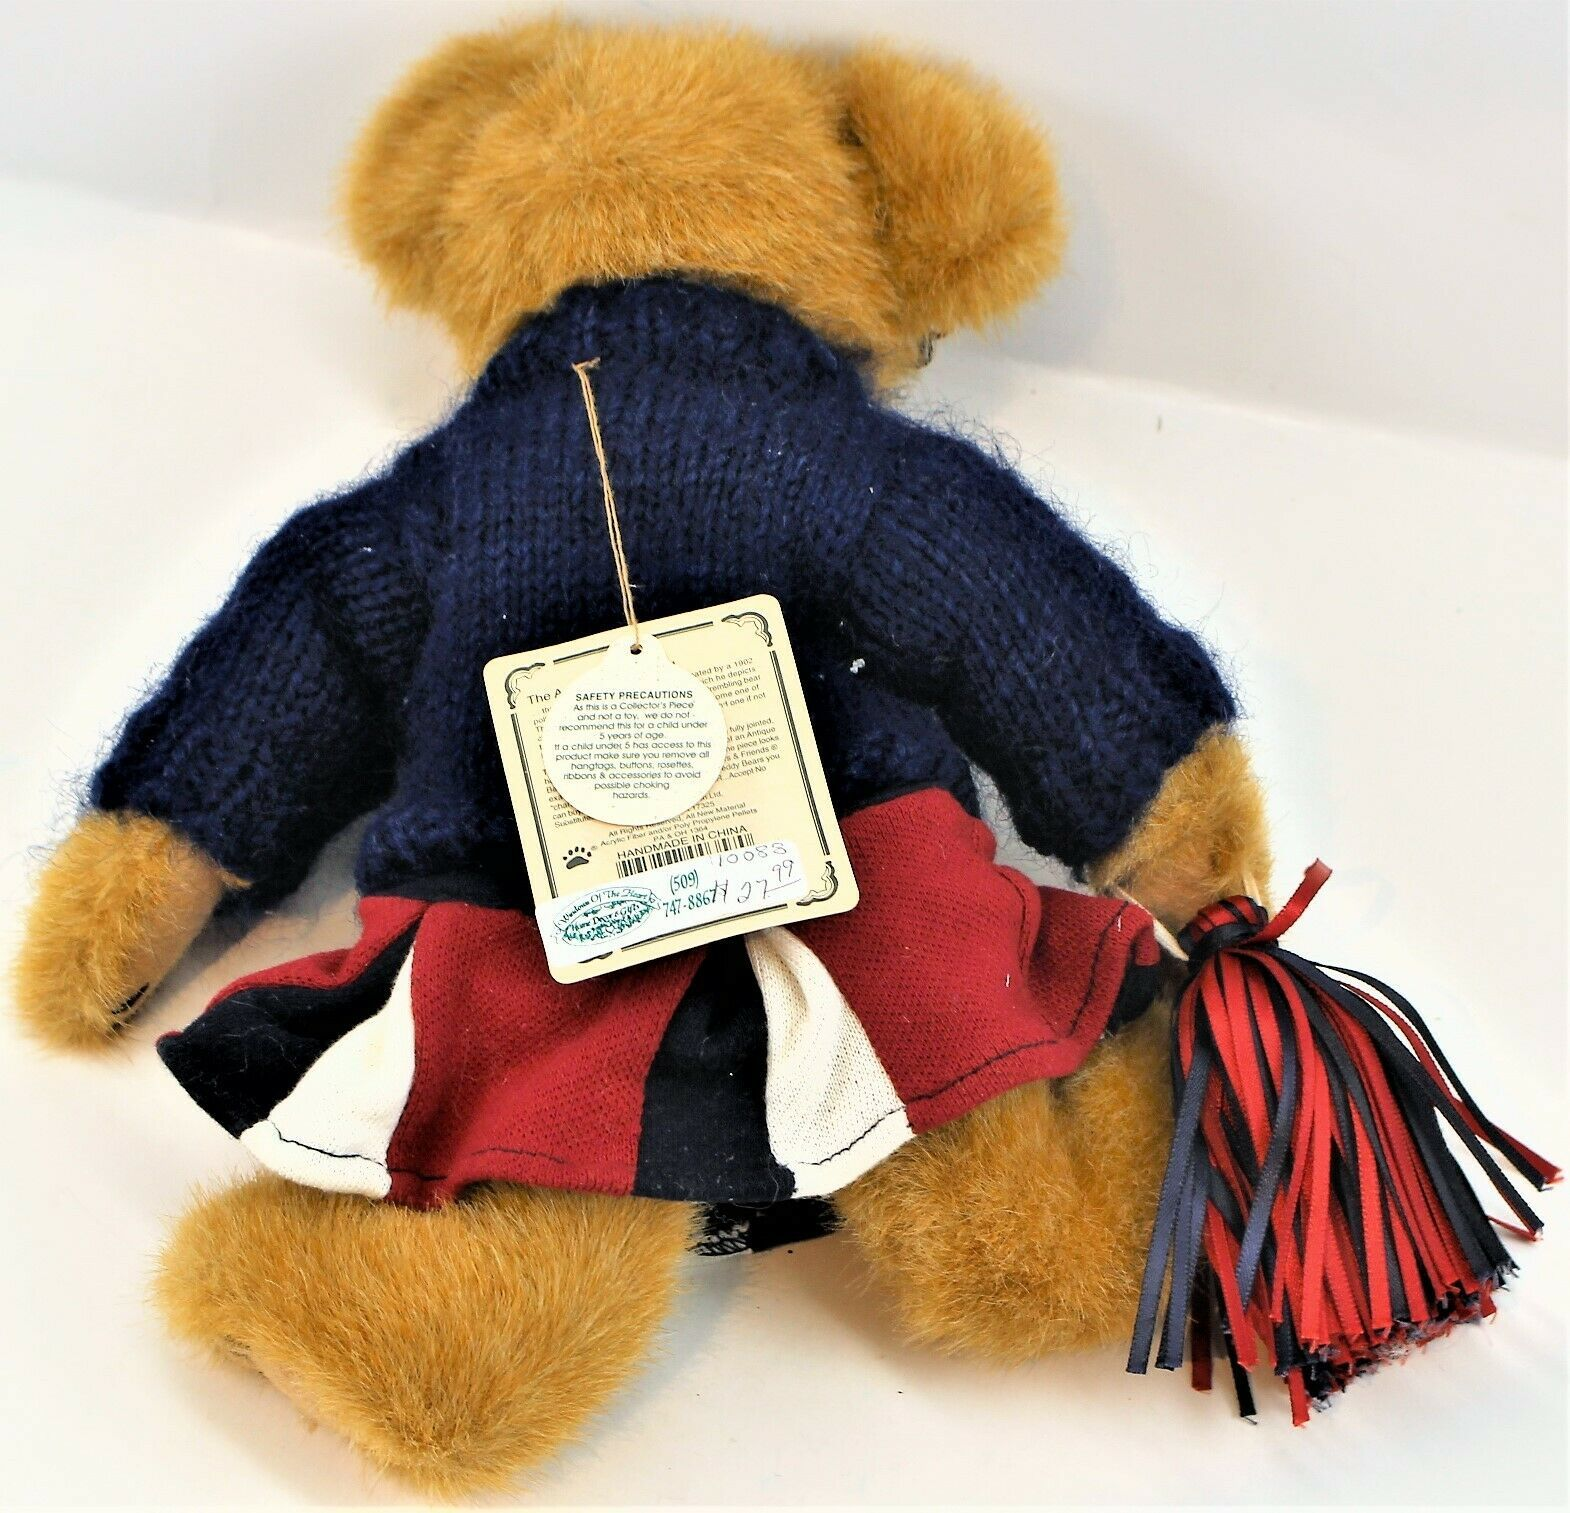 Boyds Bears Plush Tami P. Rally Plush Cheerleader Bear School Collection image 5